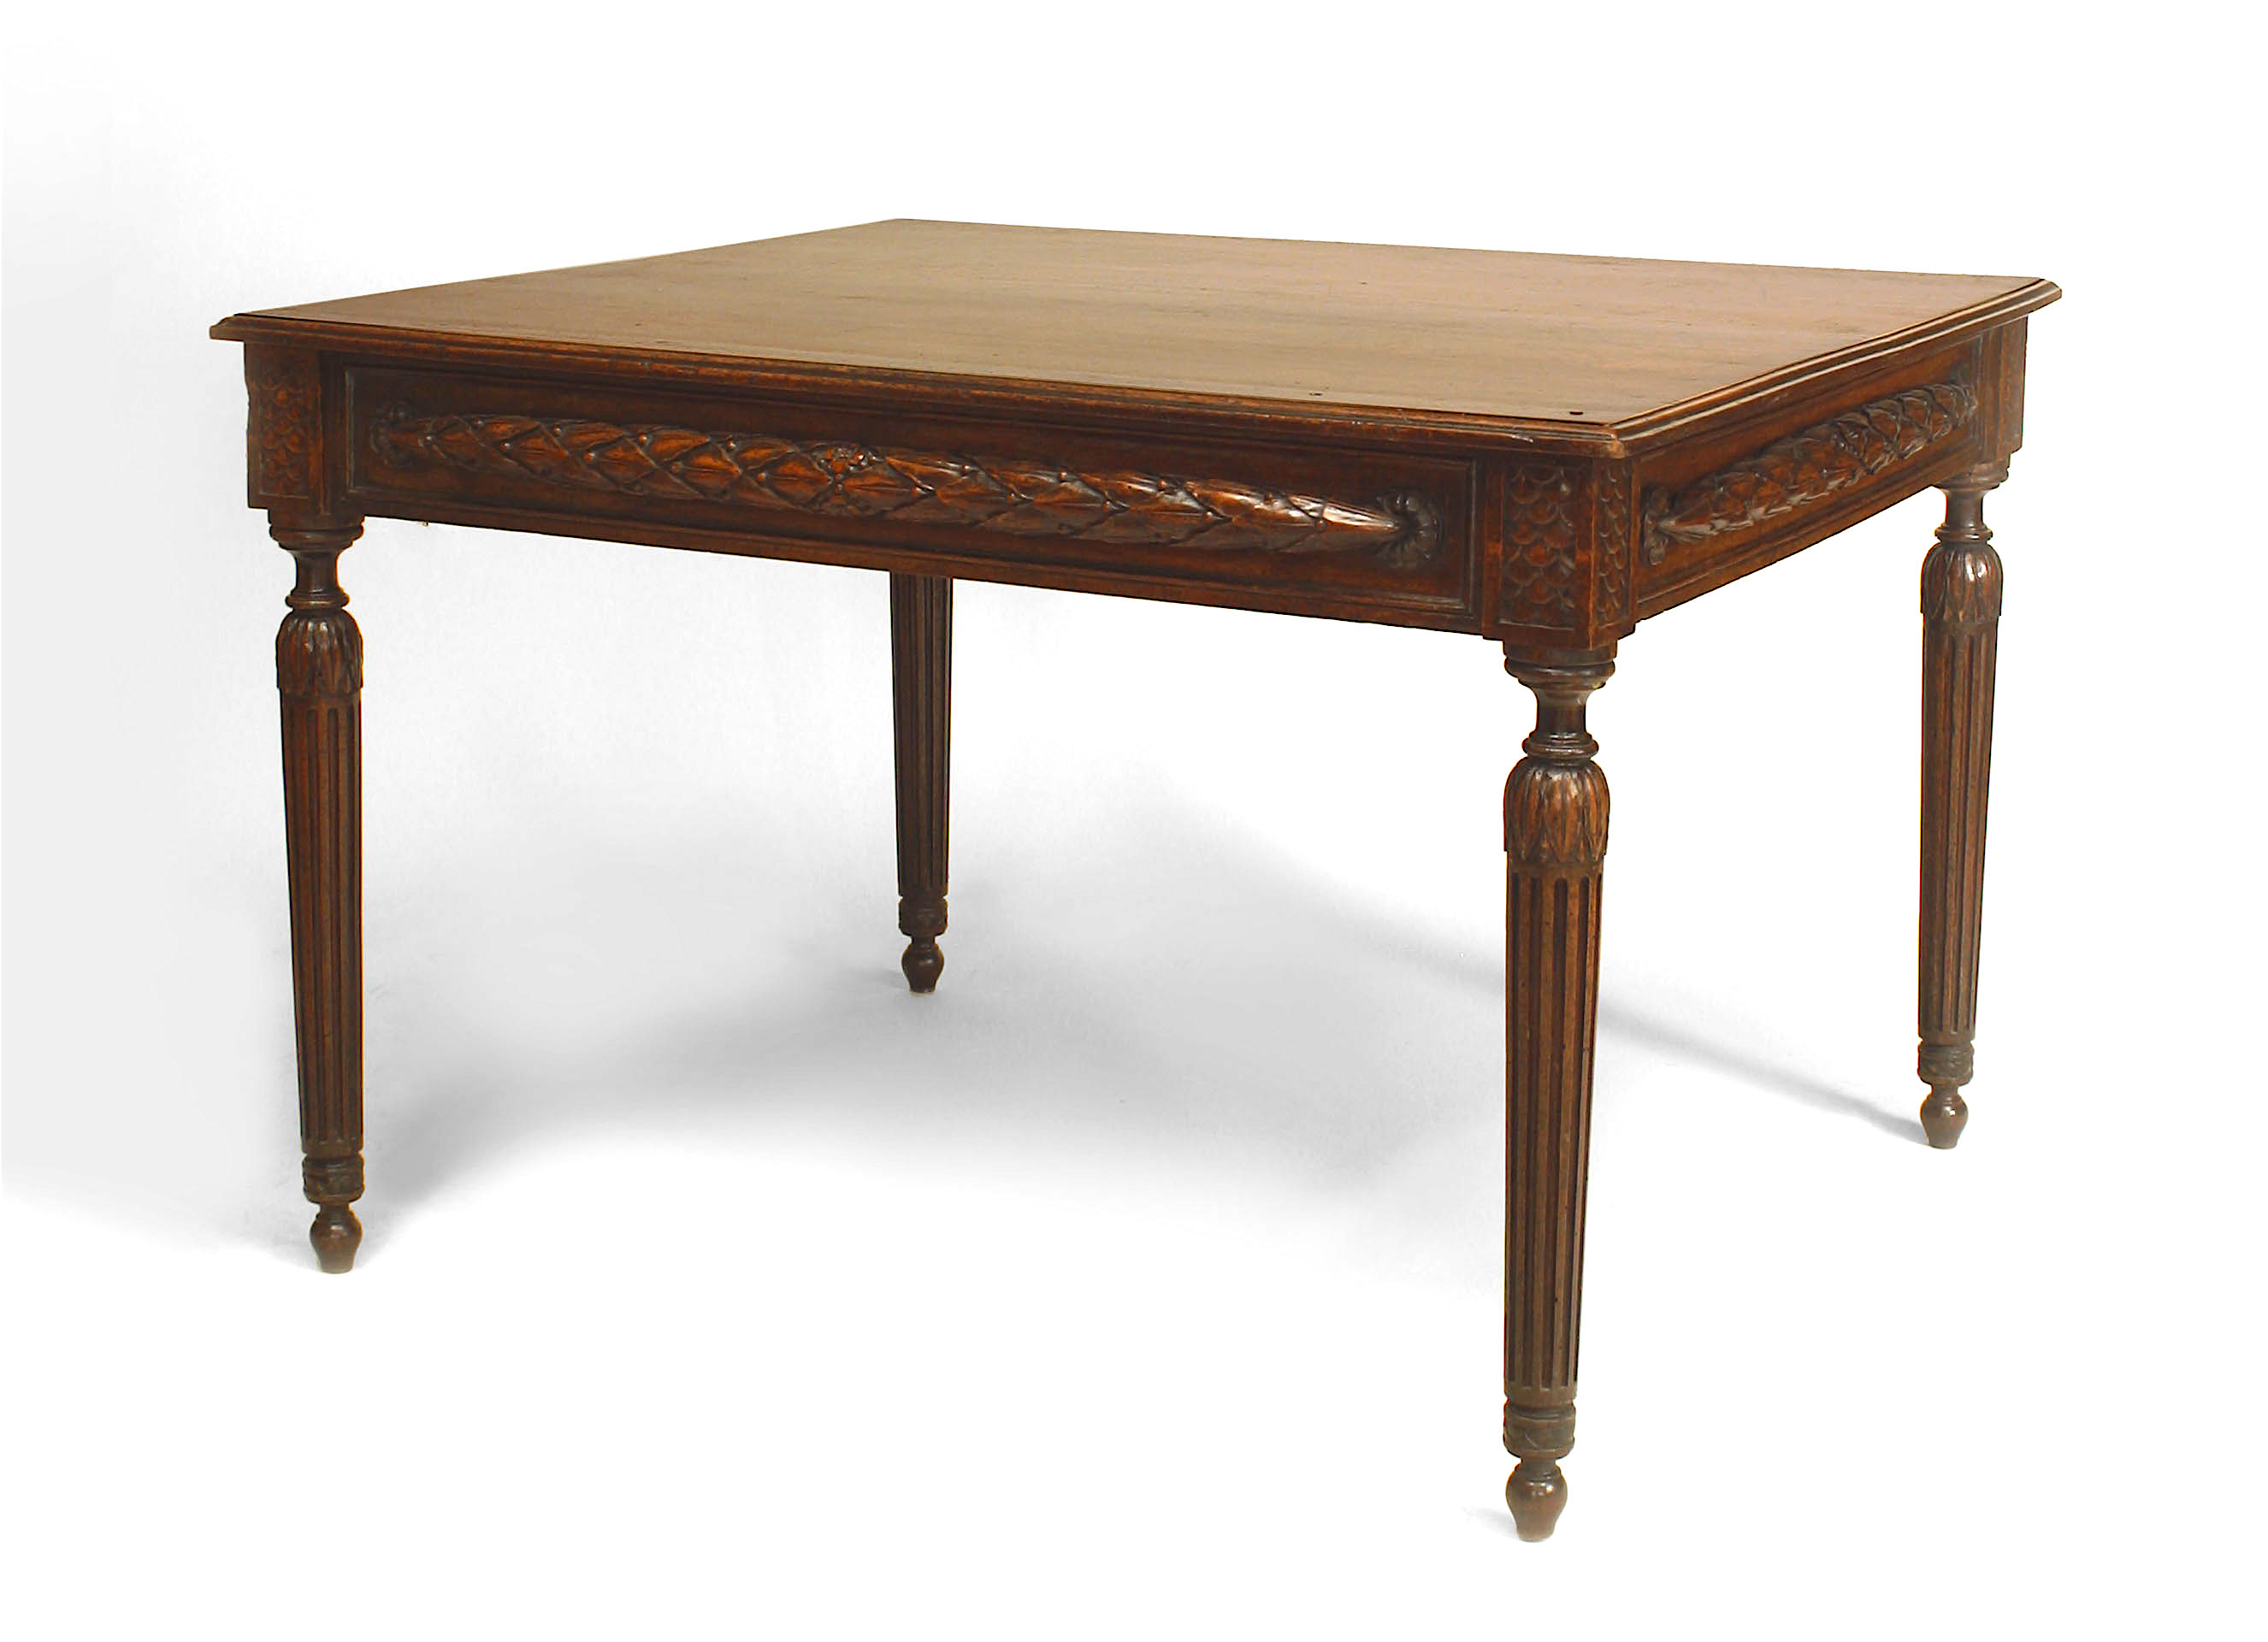 Awe Inspiring French Provincial Walnut Game Table Newel Bralicious Painted Fabric Chair Ideas Braliciousco